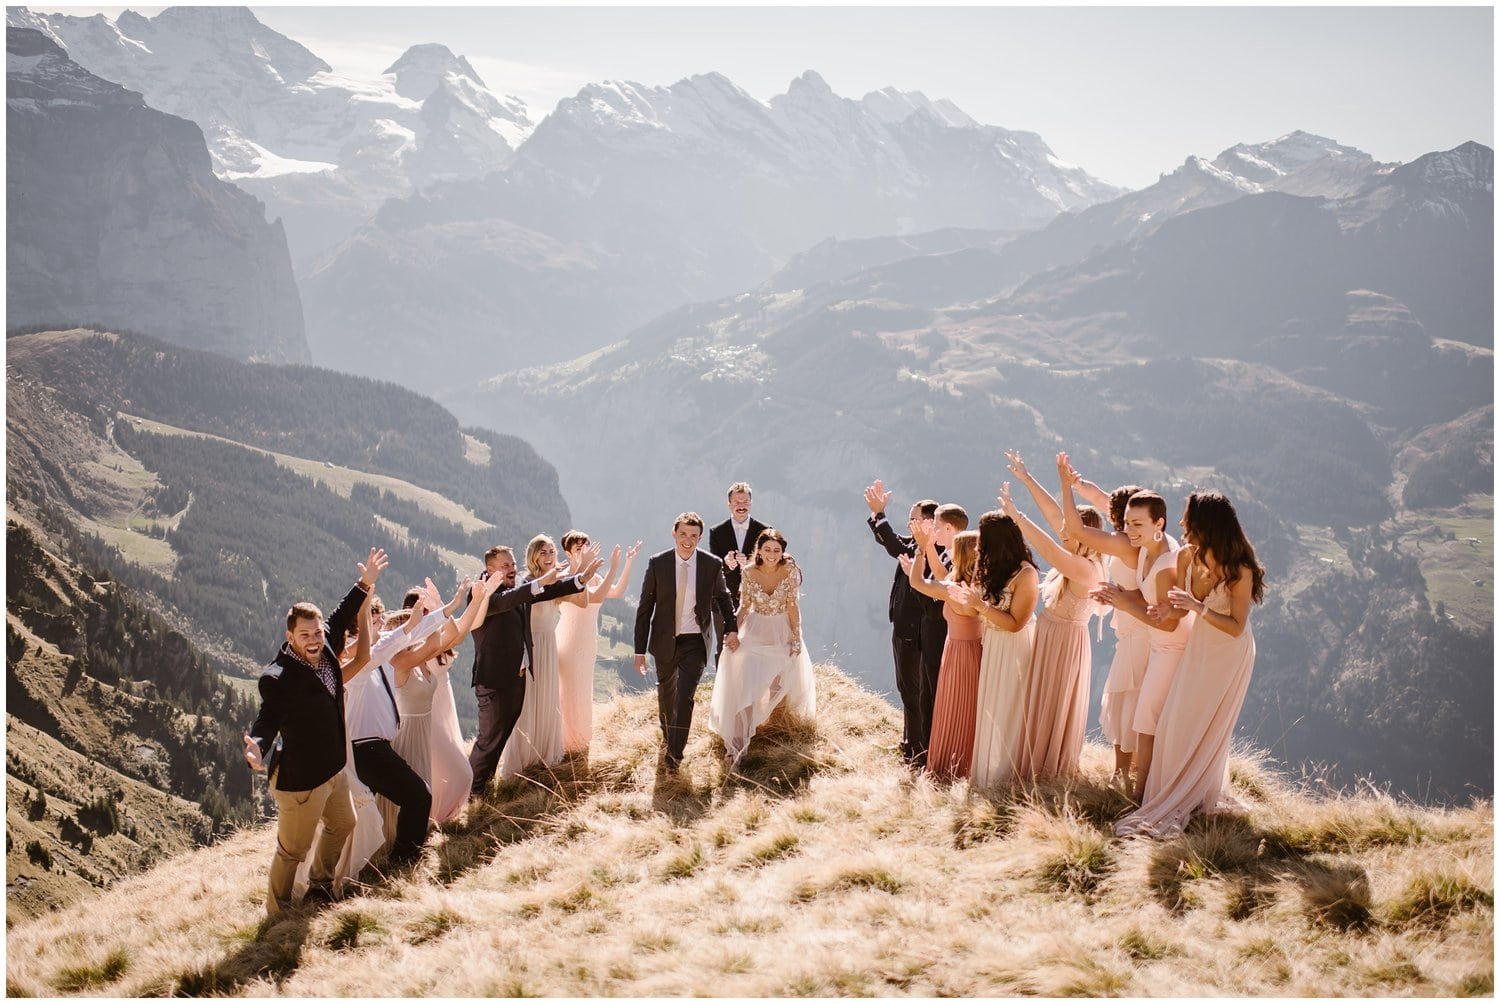 A bride and groom finish their wedding ceremony while family cheer them on in the mountains.